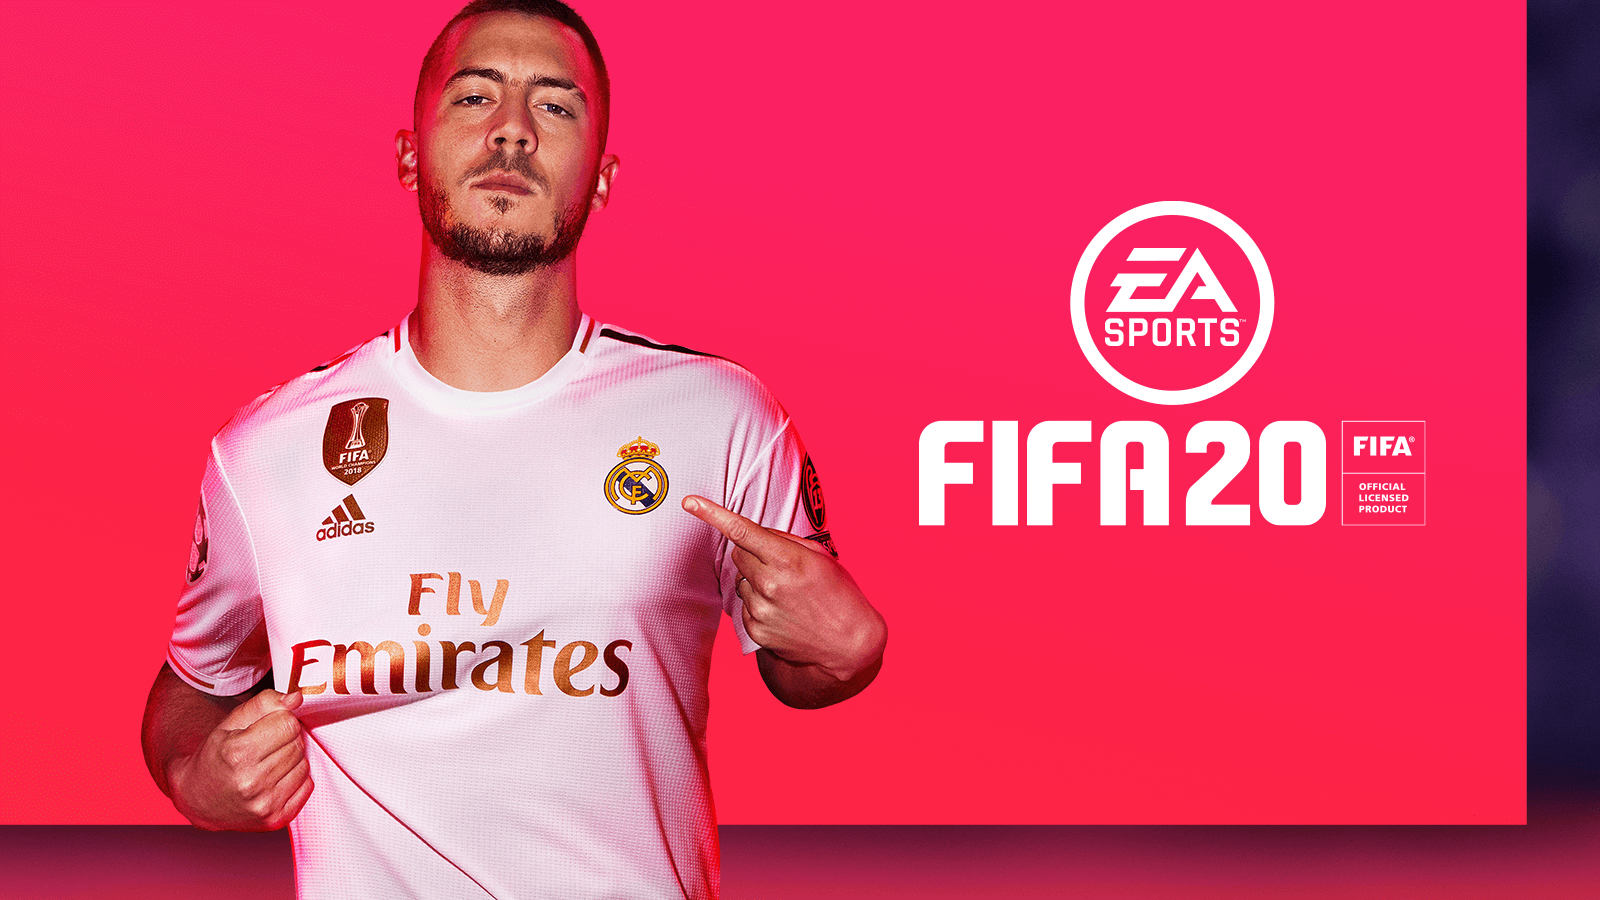 FIFA 21 Release Date is Out 12